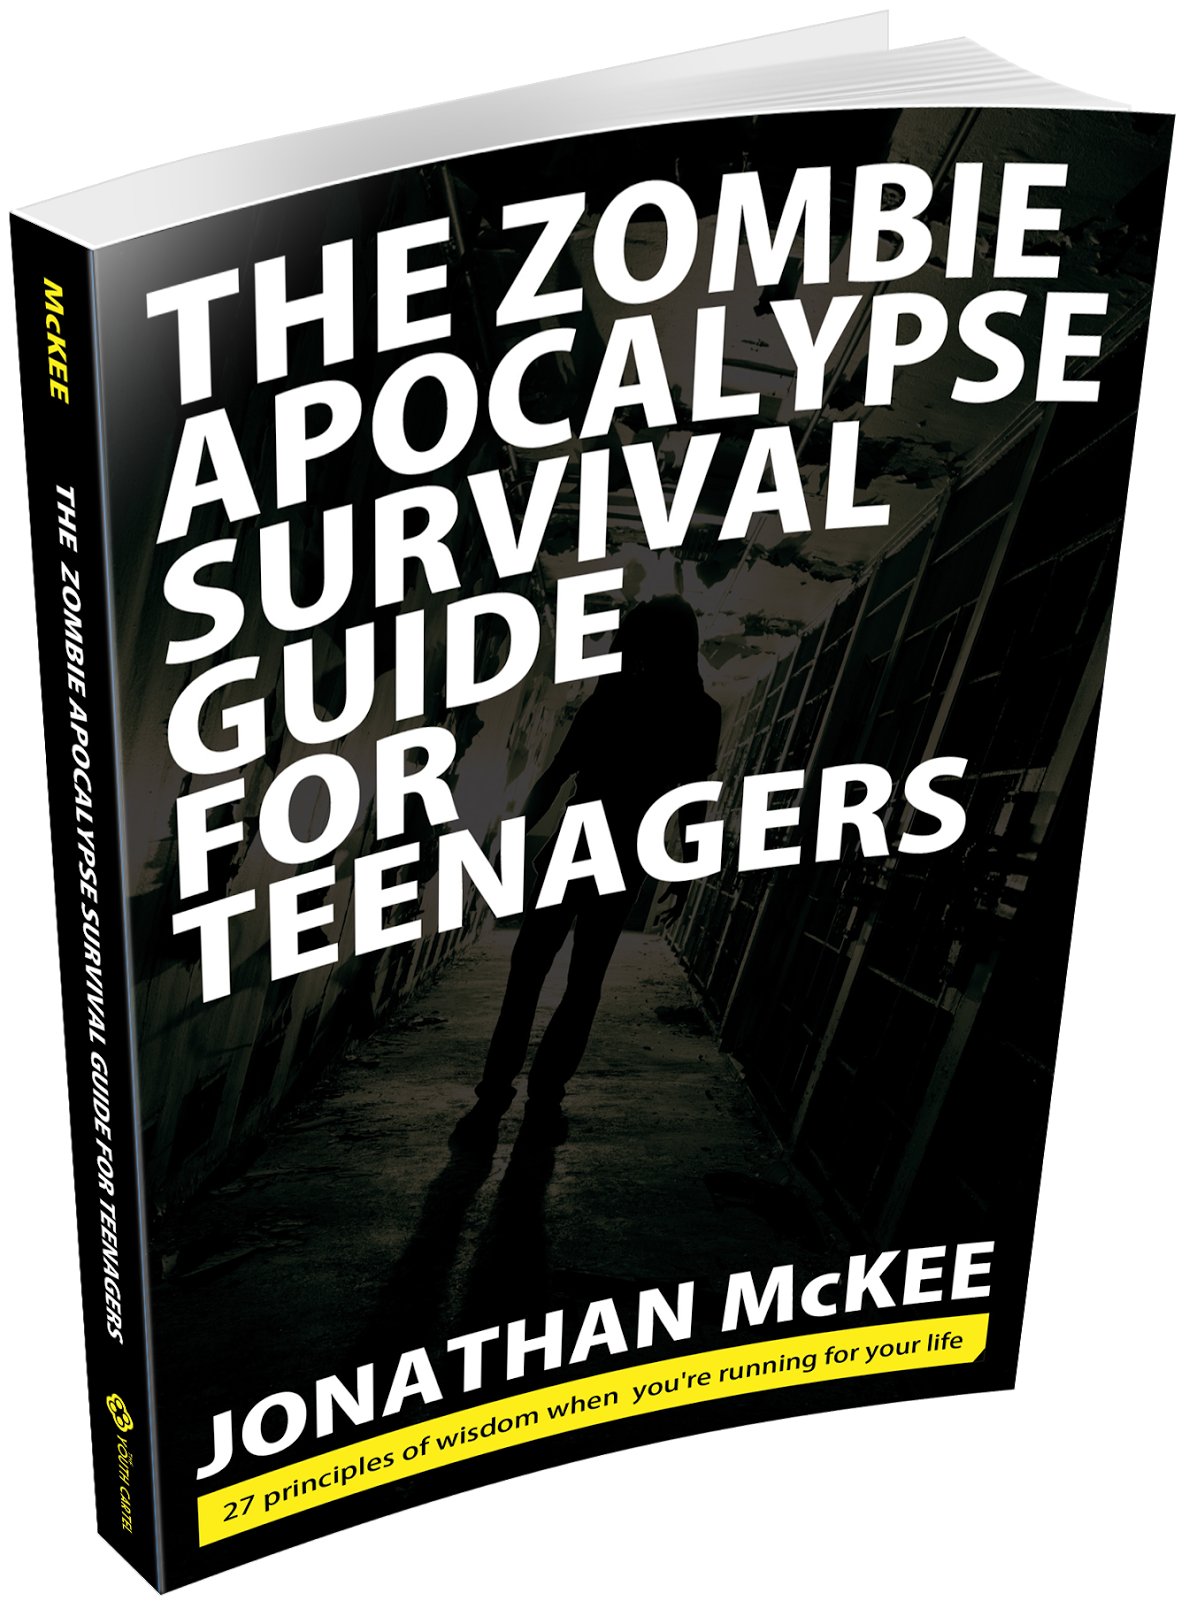 Zombie apocalypse survival guide for dummies 5th